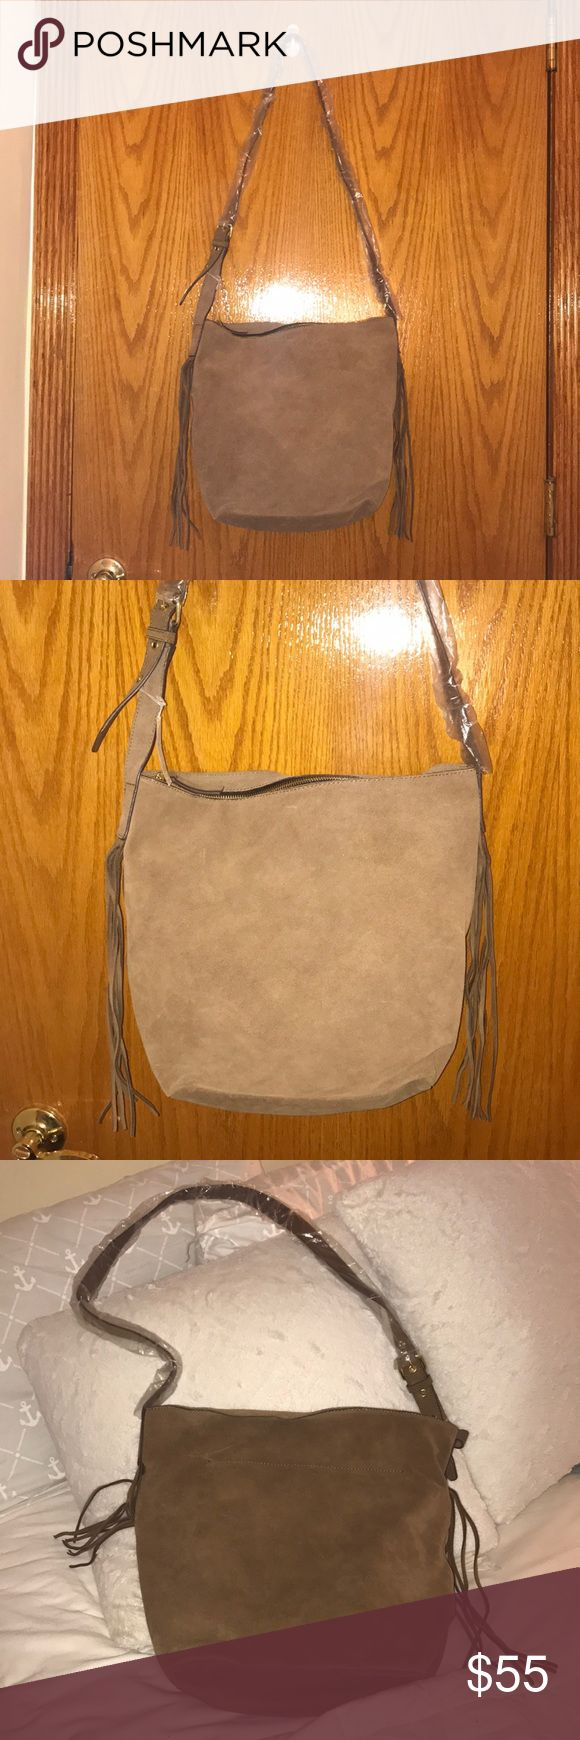 Gap brand new suede bag Brand new with tag Gap Cognac Suede bag!! This bag is a cross body with adjustable strap! Zipper closure . Middle to large . Bag has a zipper on the inside ! Fringes on the side ! Gorgeous gorgeous bag ! Great addition to any wardrobe! GAP Bags Crossbody Bags